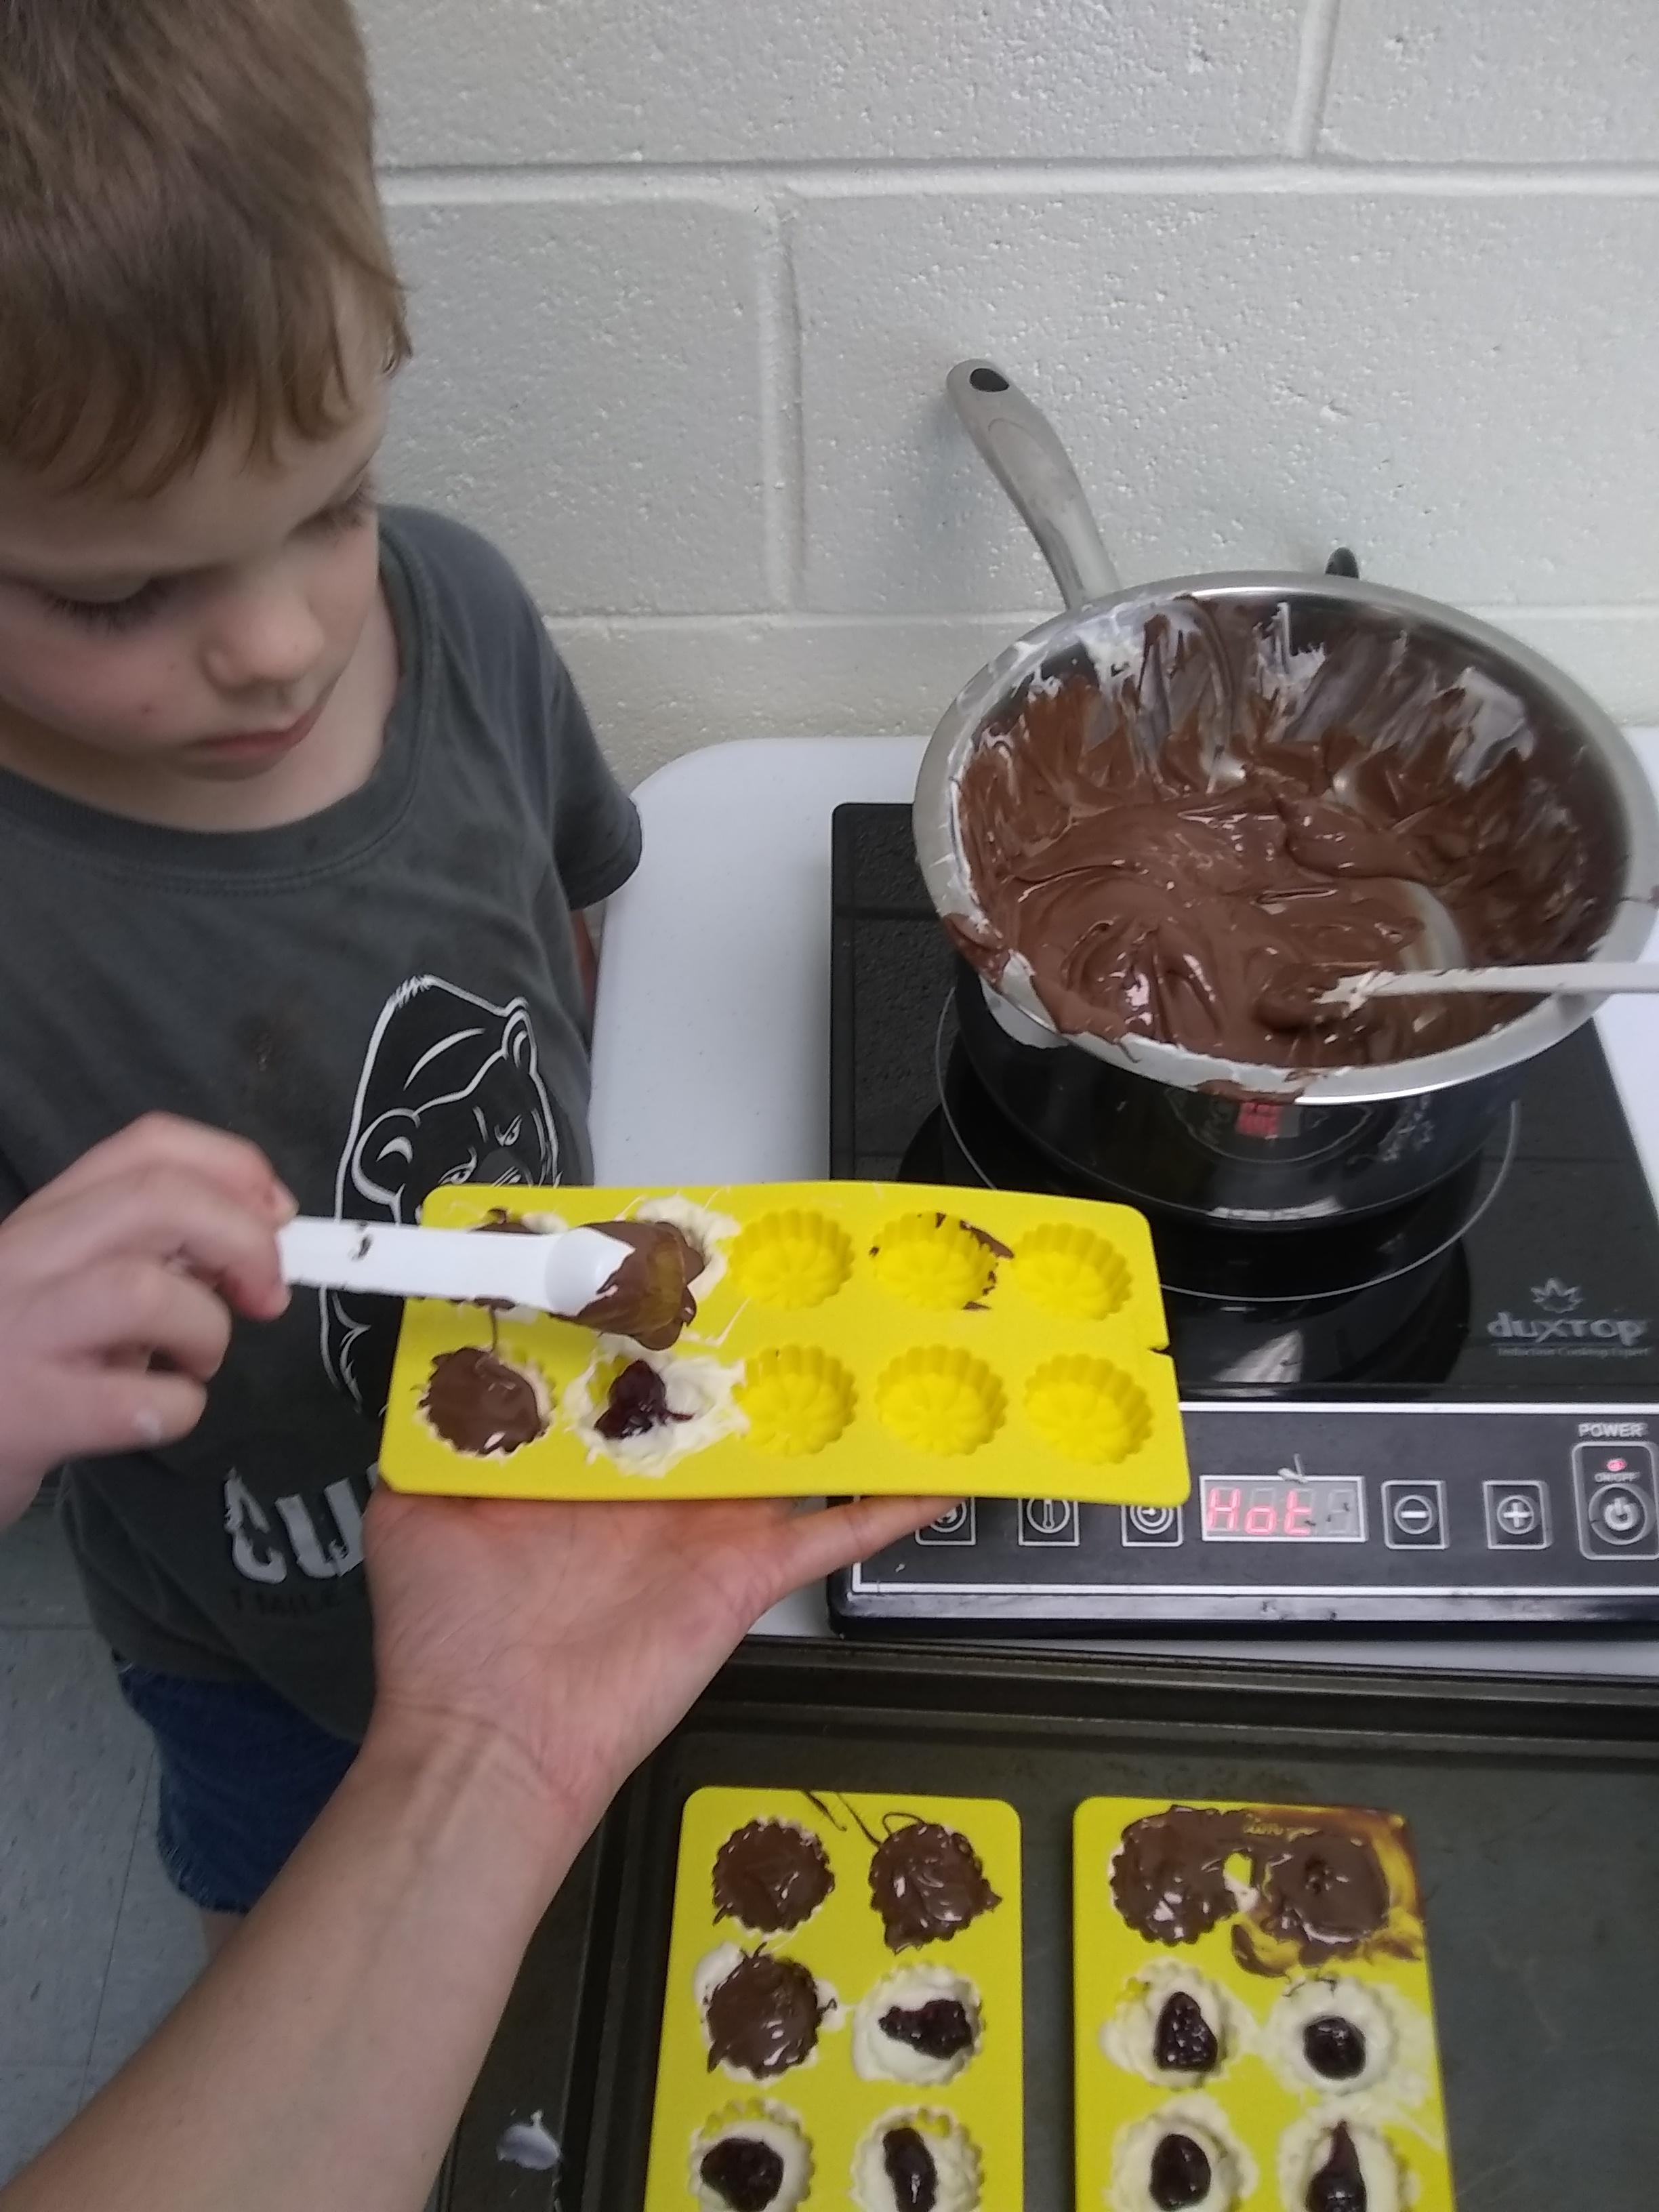 kids preparing chocolate candy shapes together